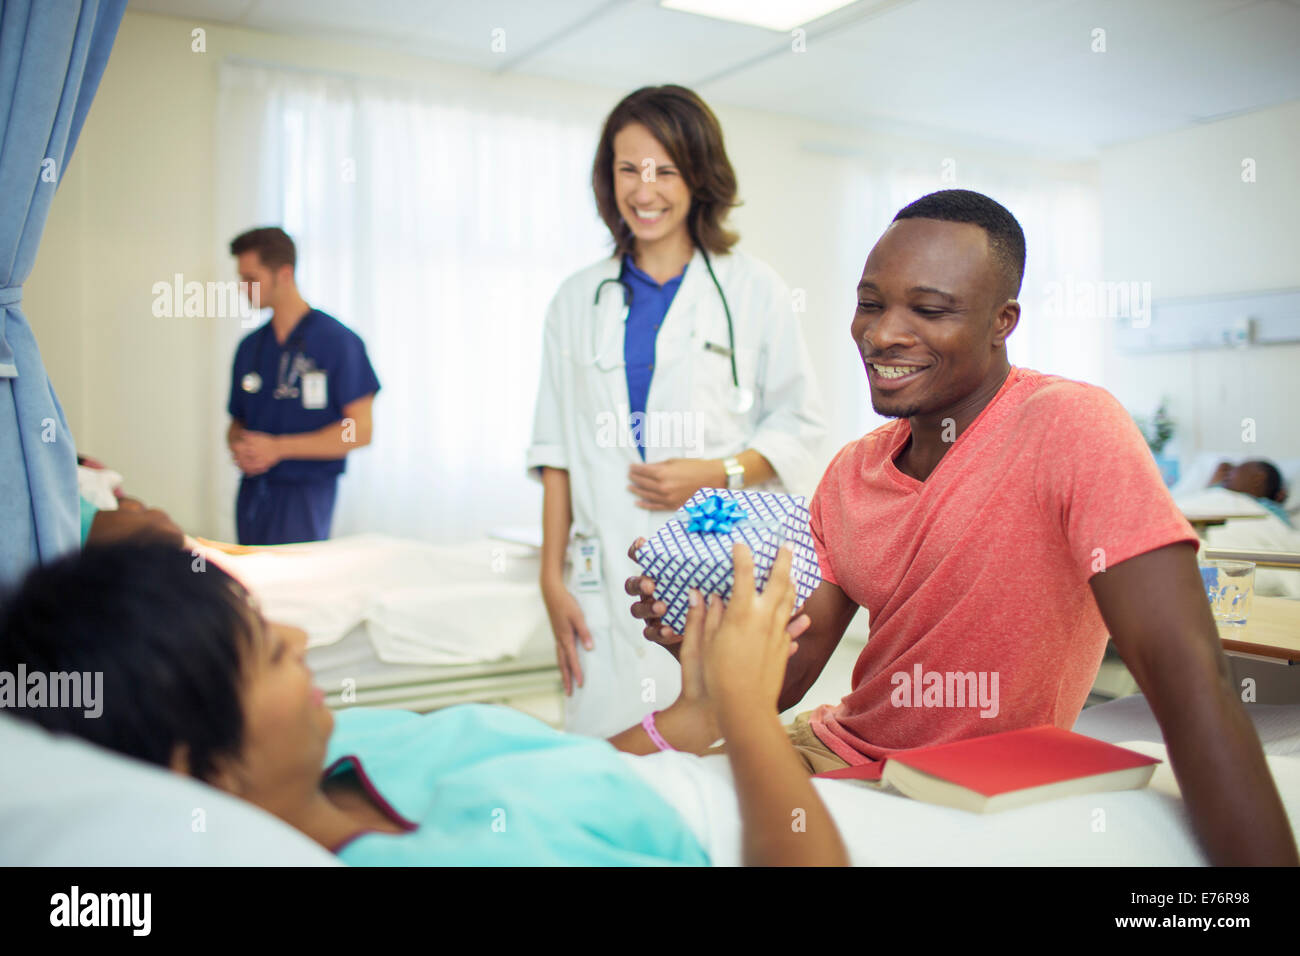 Man giving girlfriend present in hospital - Stock Image